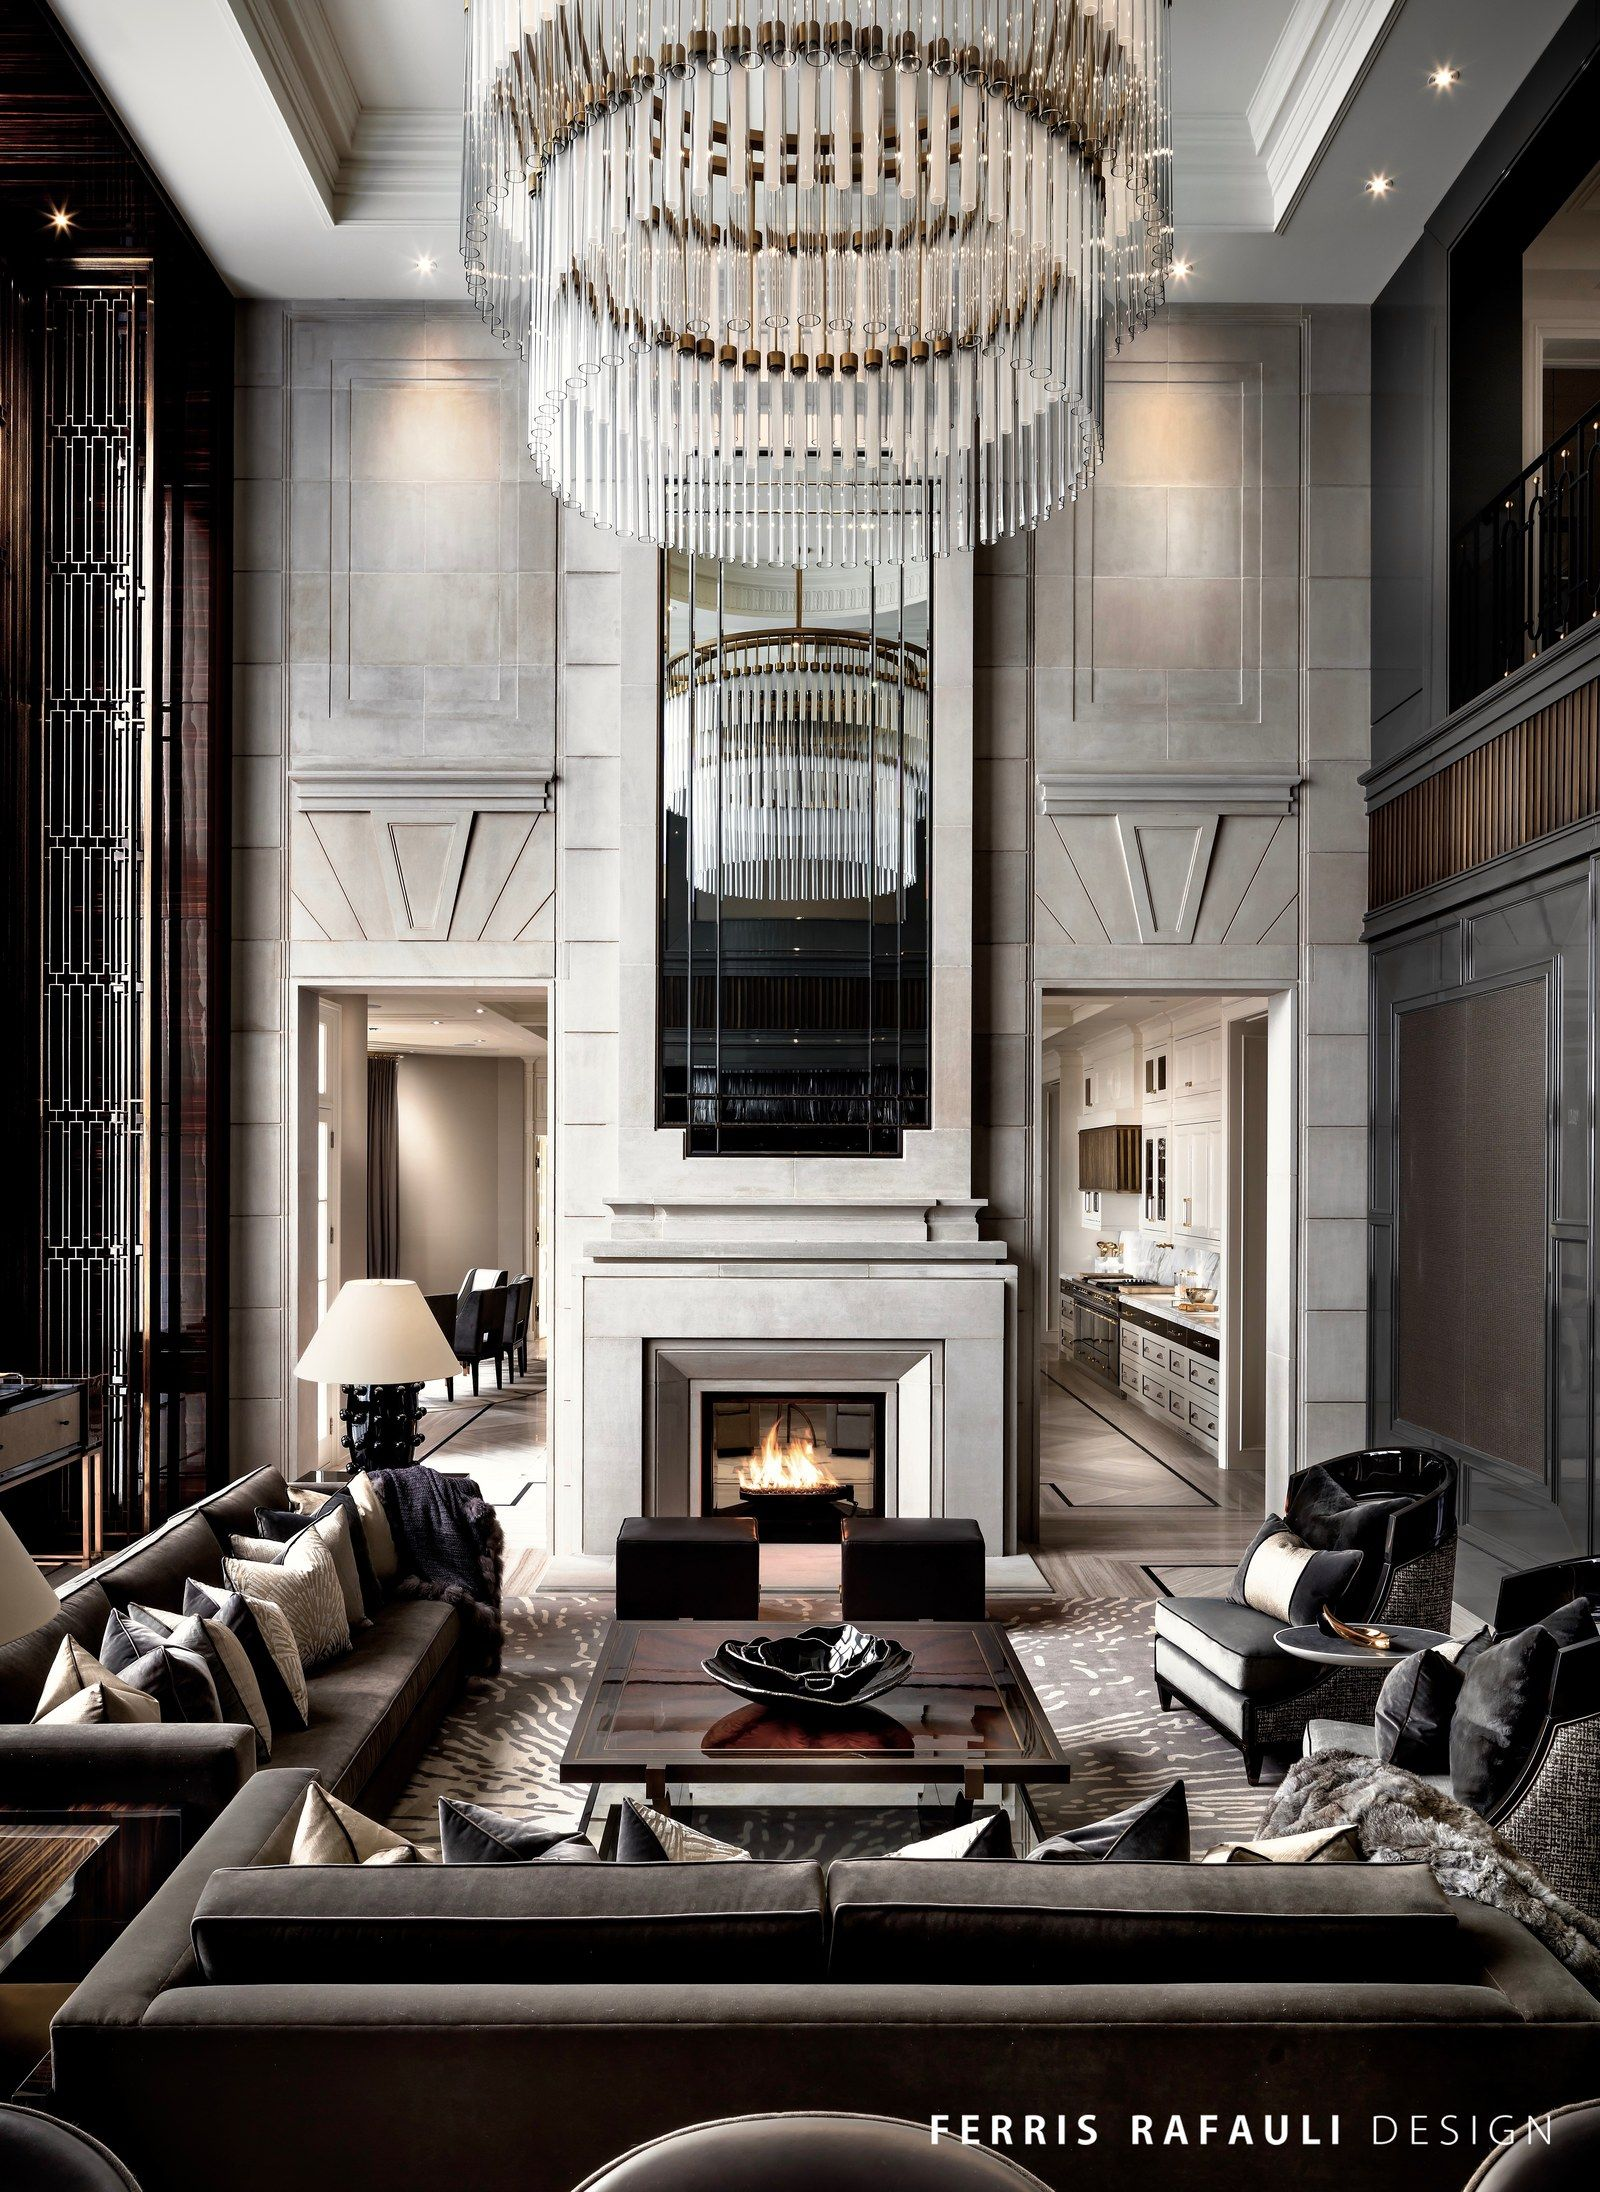 Best Interior Design Ideas Living Room Lighting Low Ceiling 8 Stunning That Will Take Your House To Top